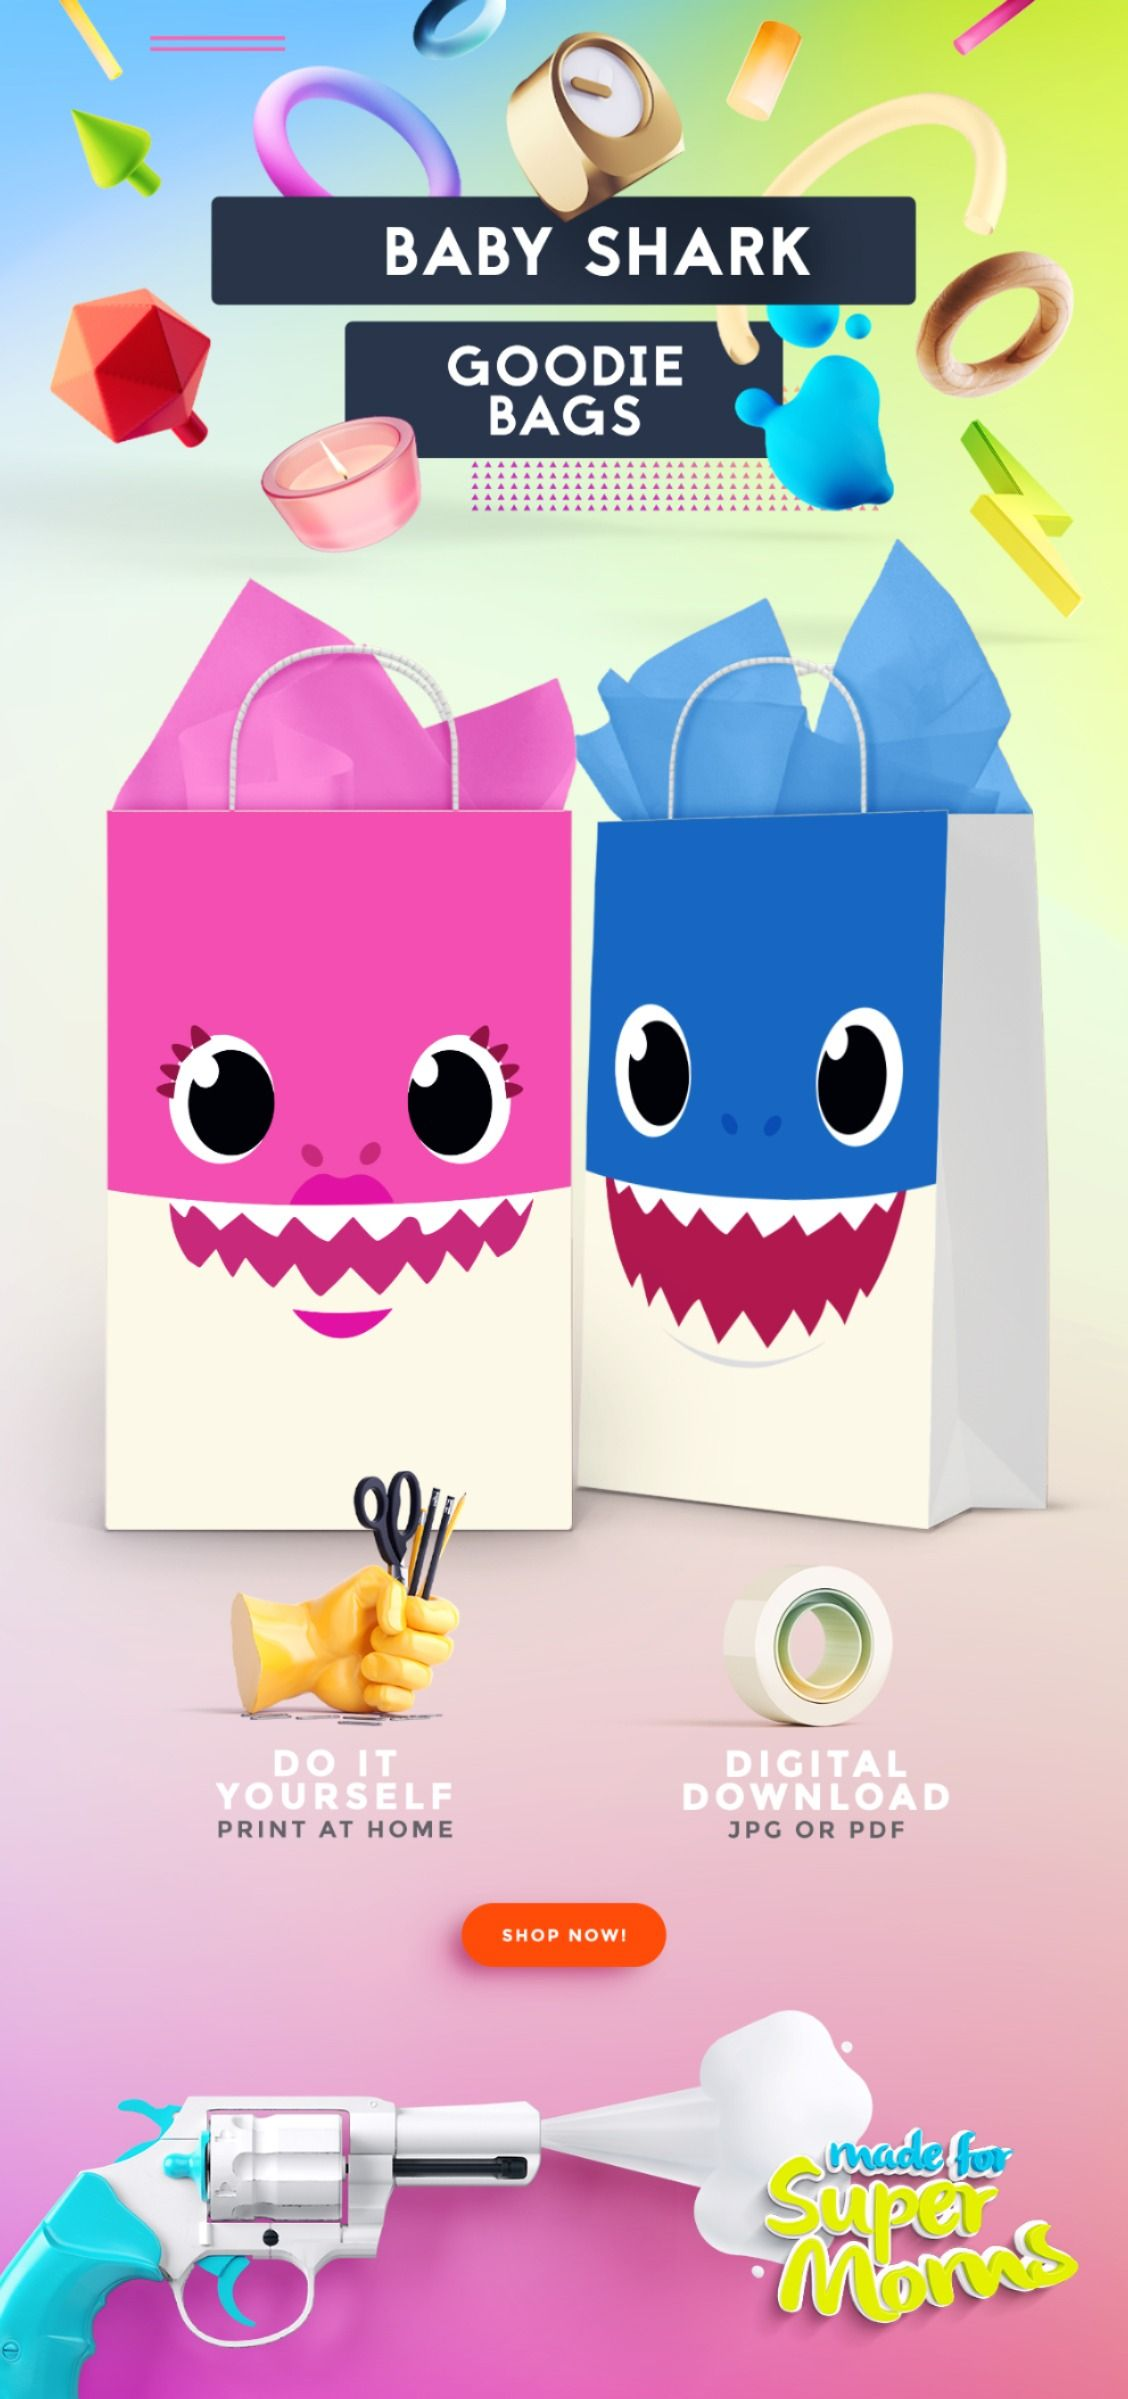 Baby Shark Goodie and Favor Bags